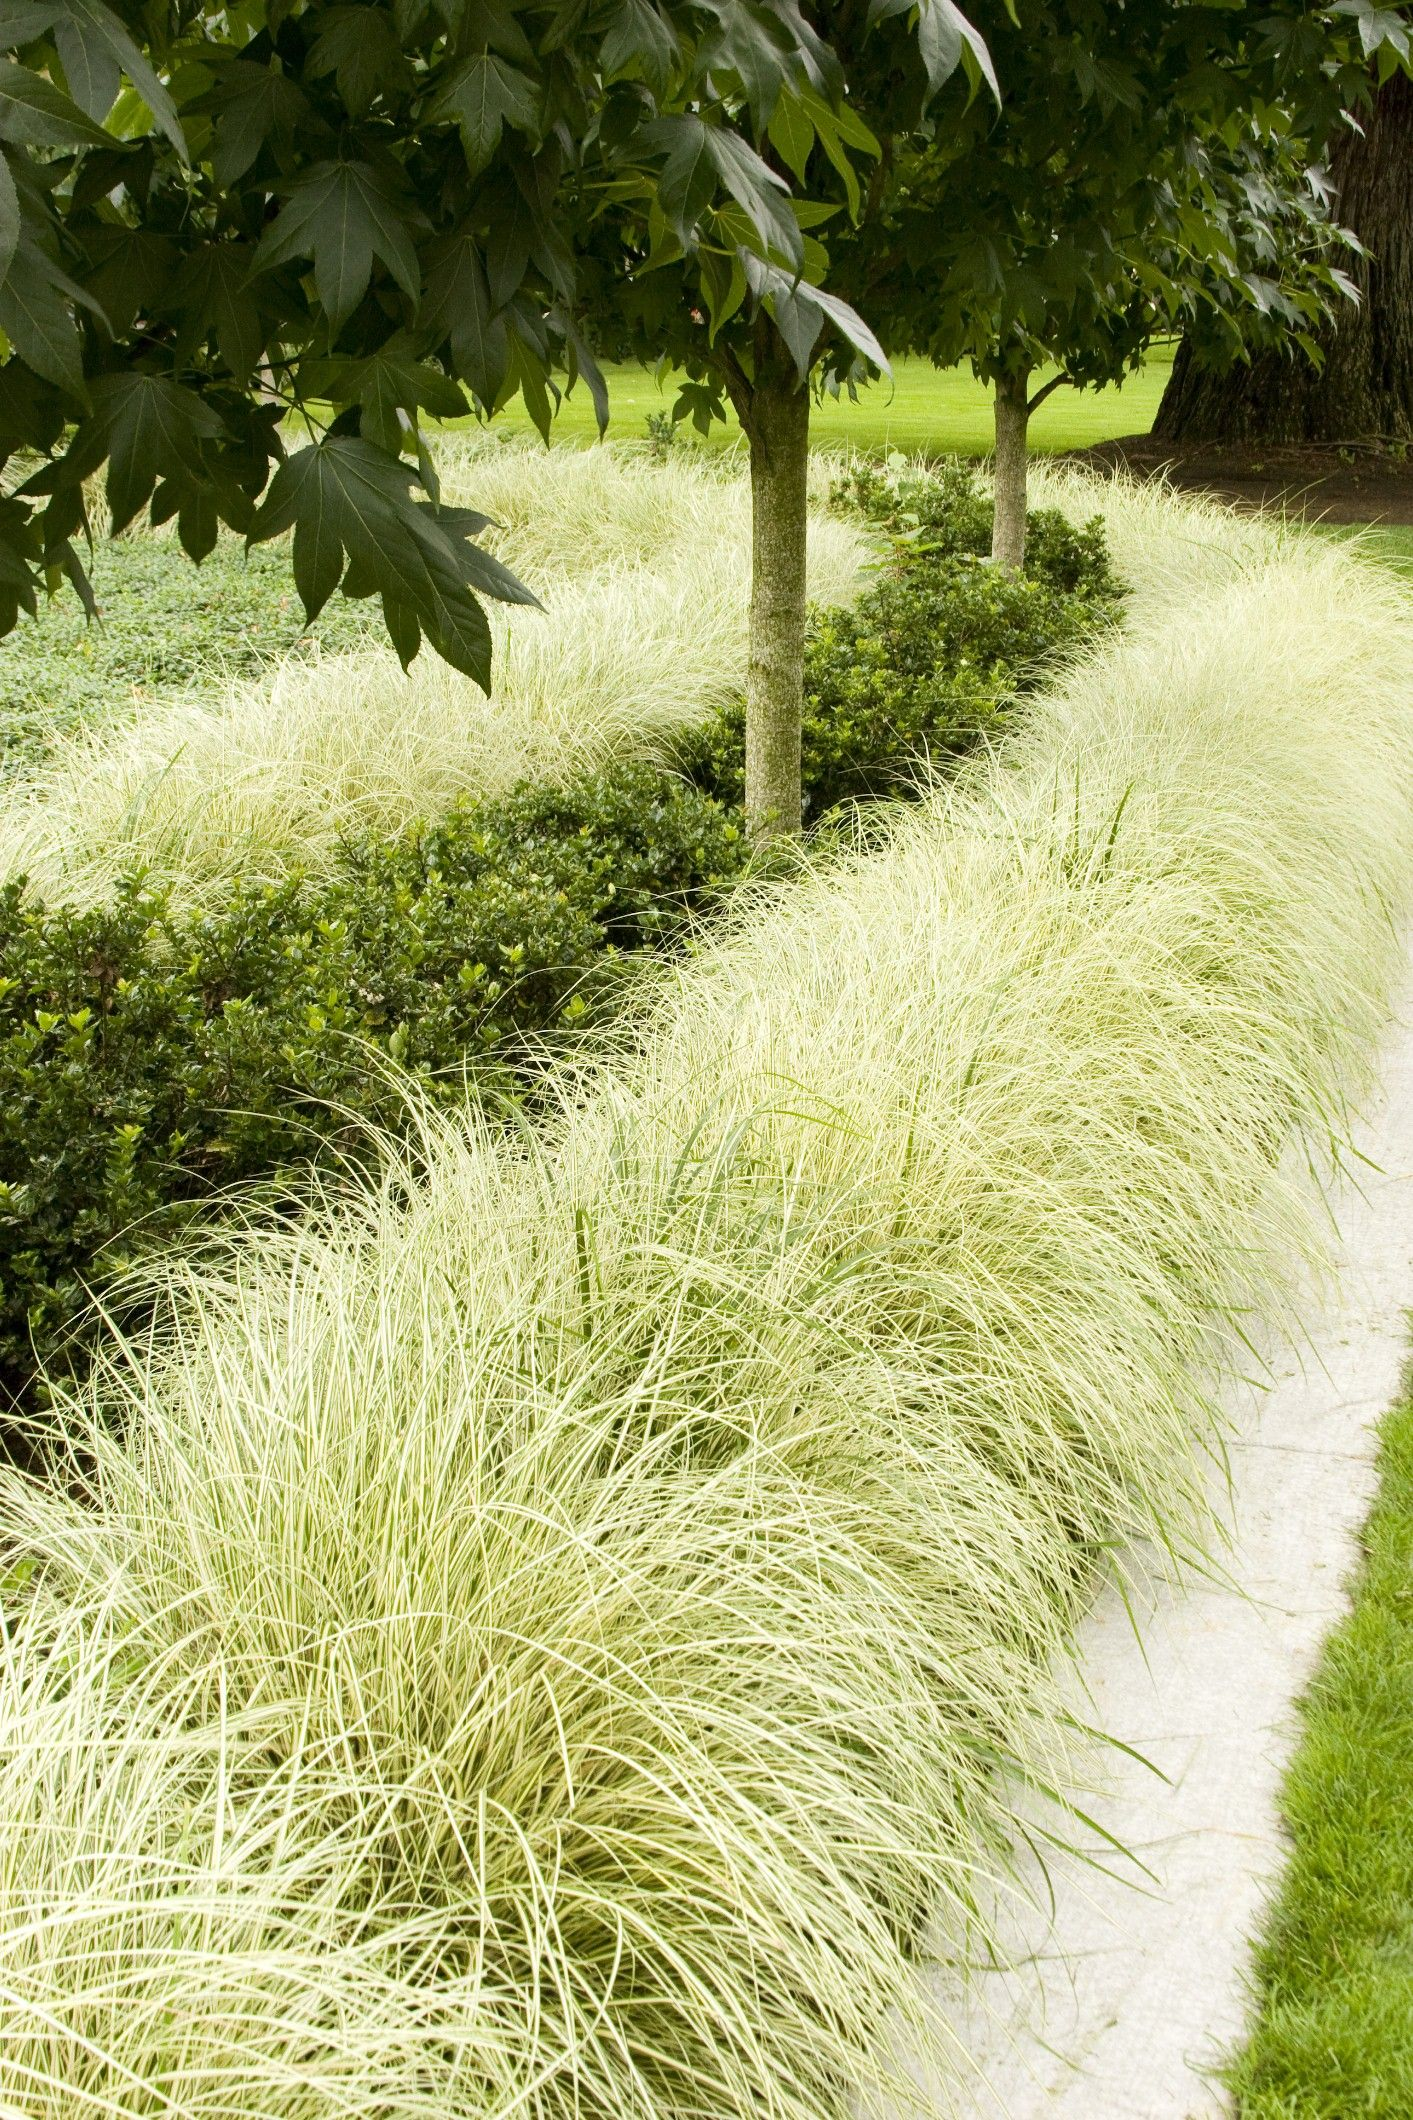 Variegated Japanese Sedge Monrovia Variegated Japanese Sedge Grasses Landscaping Landscape Design Ornamental Grasses